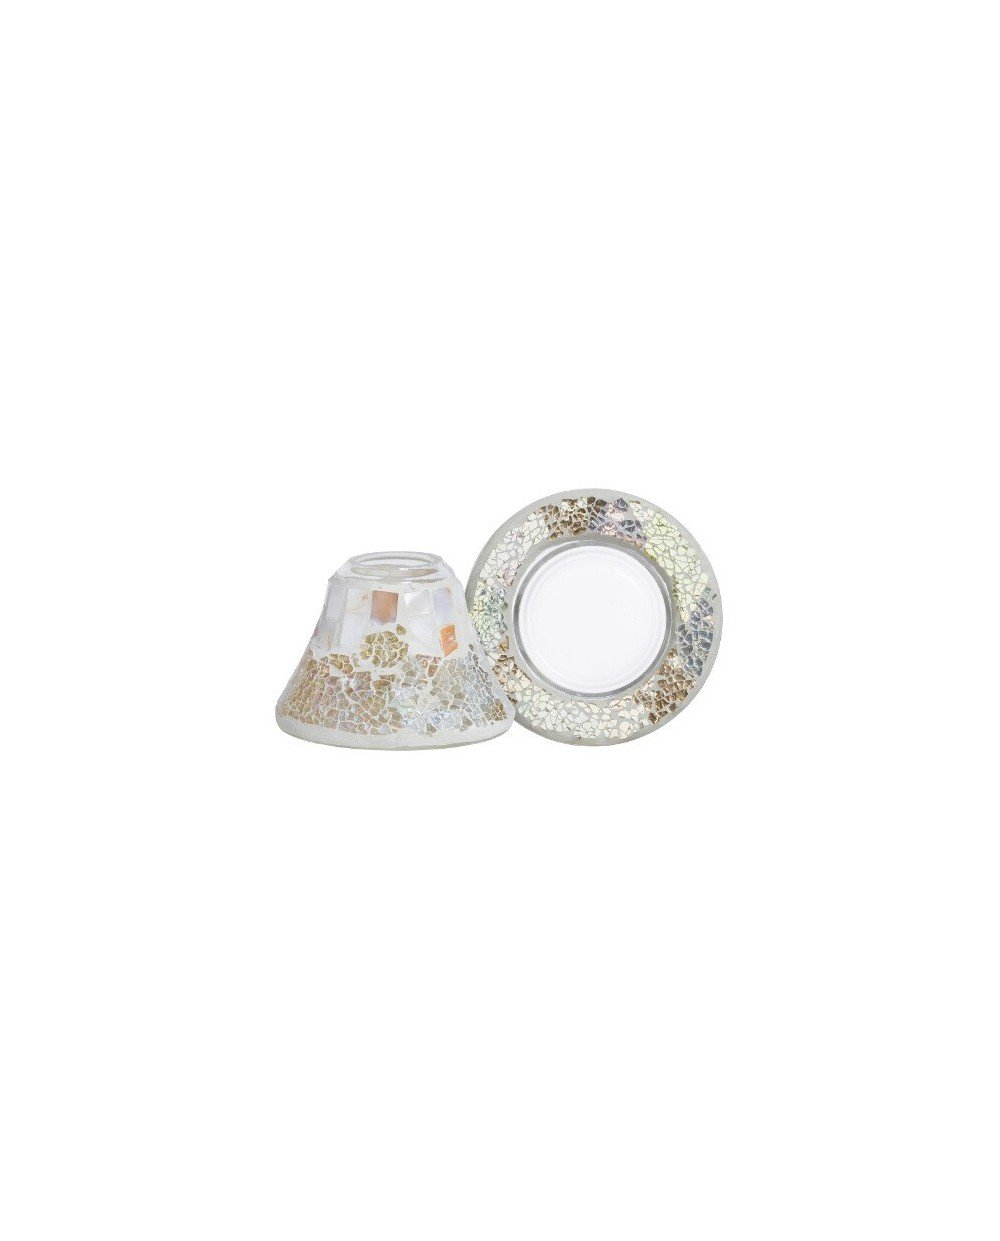 YANKEE CANDLE - YANKEE GOLD AND PEARL SMALL SHADE AND TRAY - PS-YC1521547